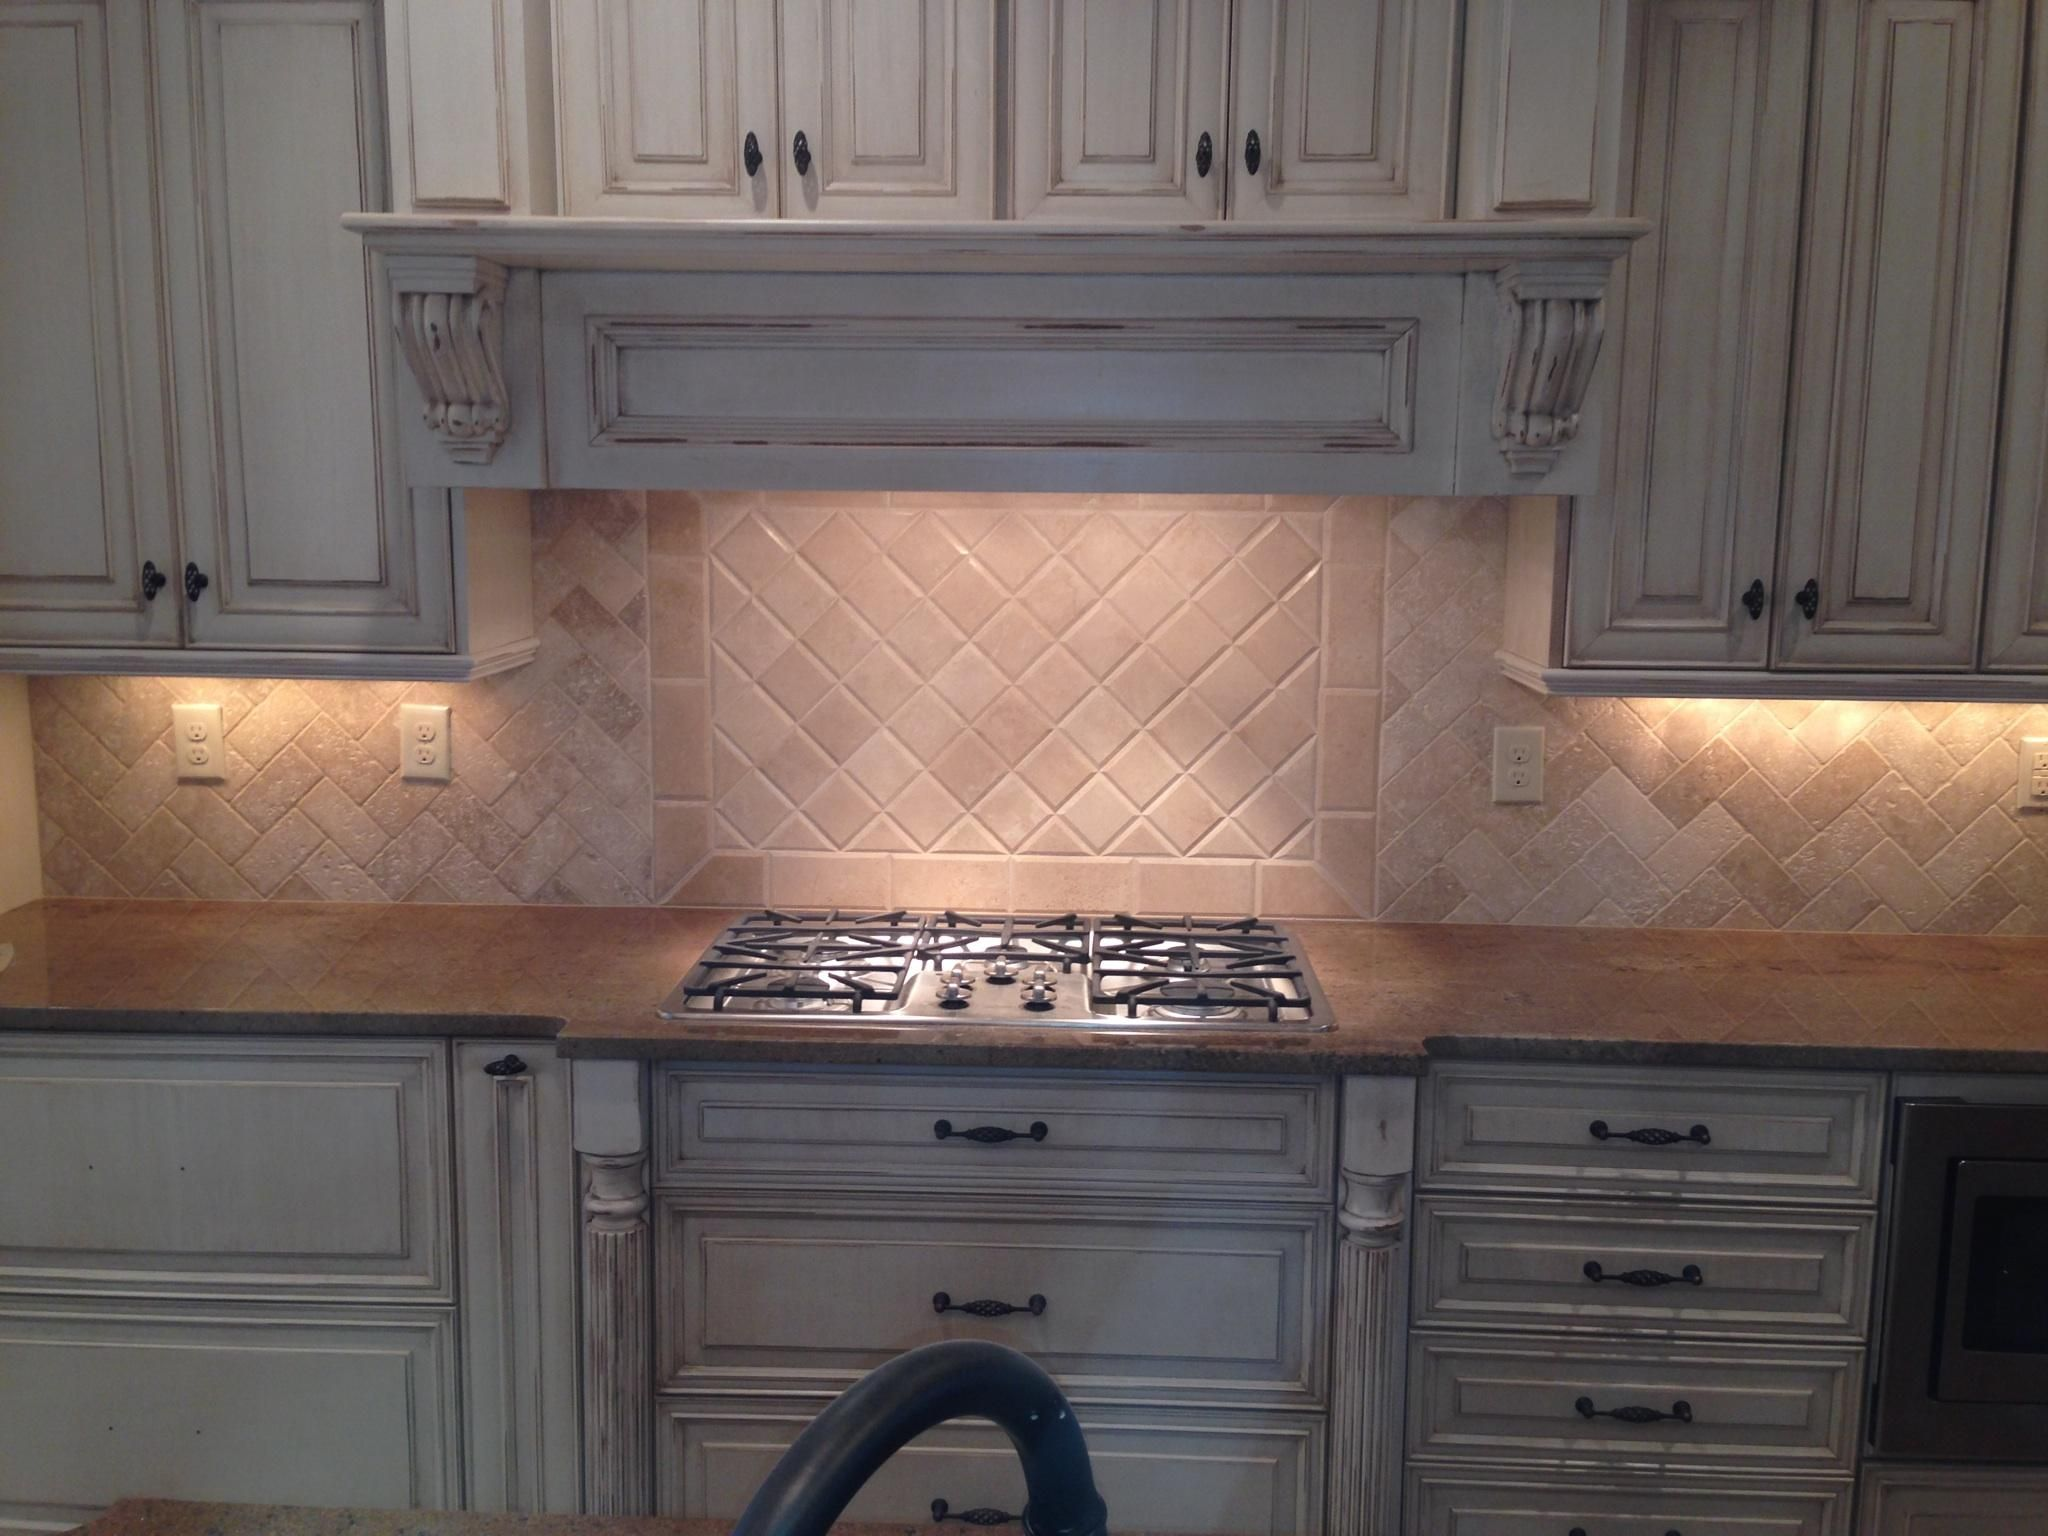 Backsplash Tumbled Marble Travertine Herringbone Tile Projects Pinterest Travertine